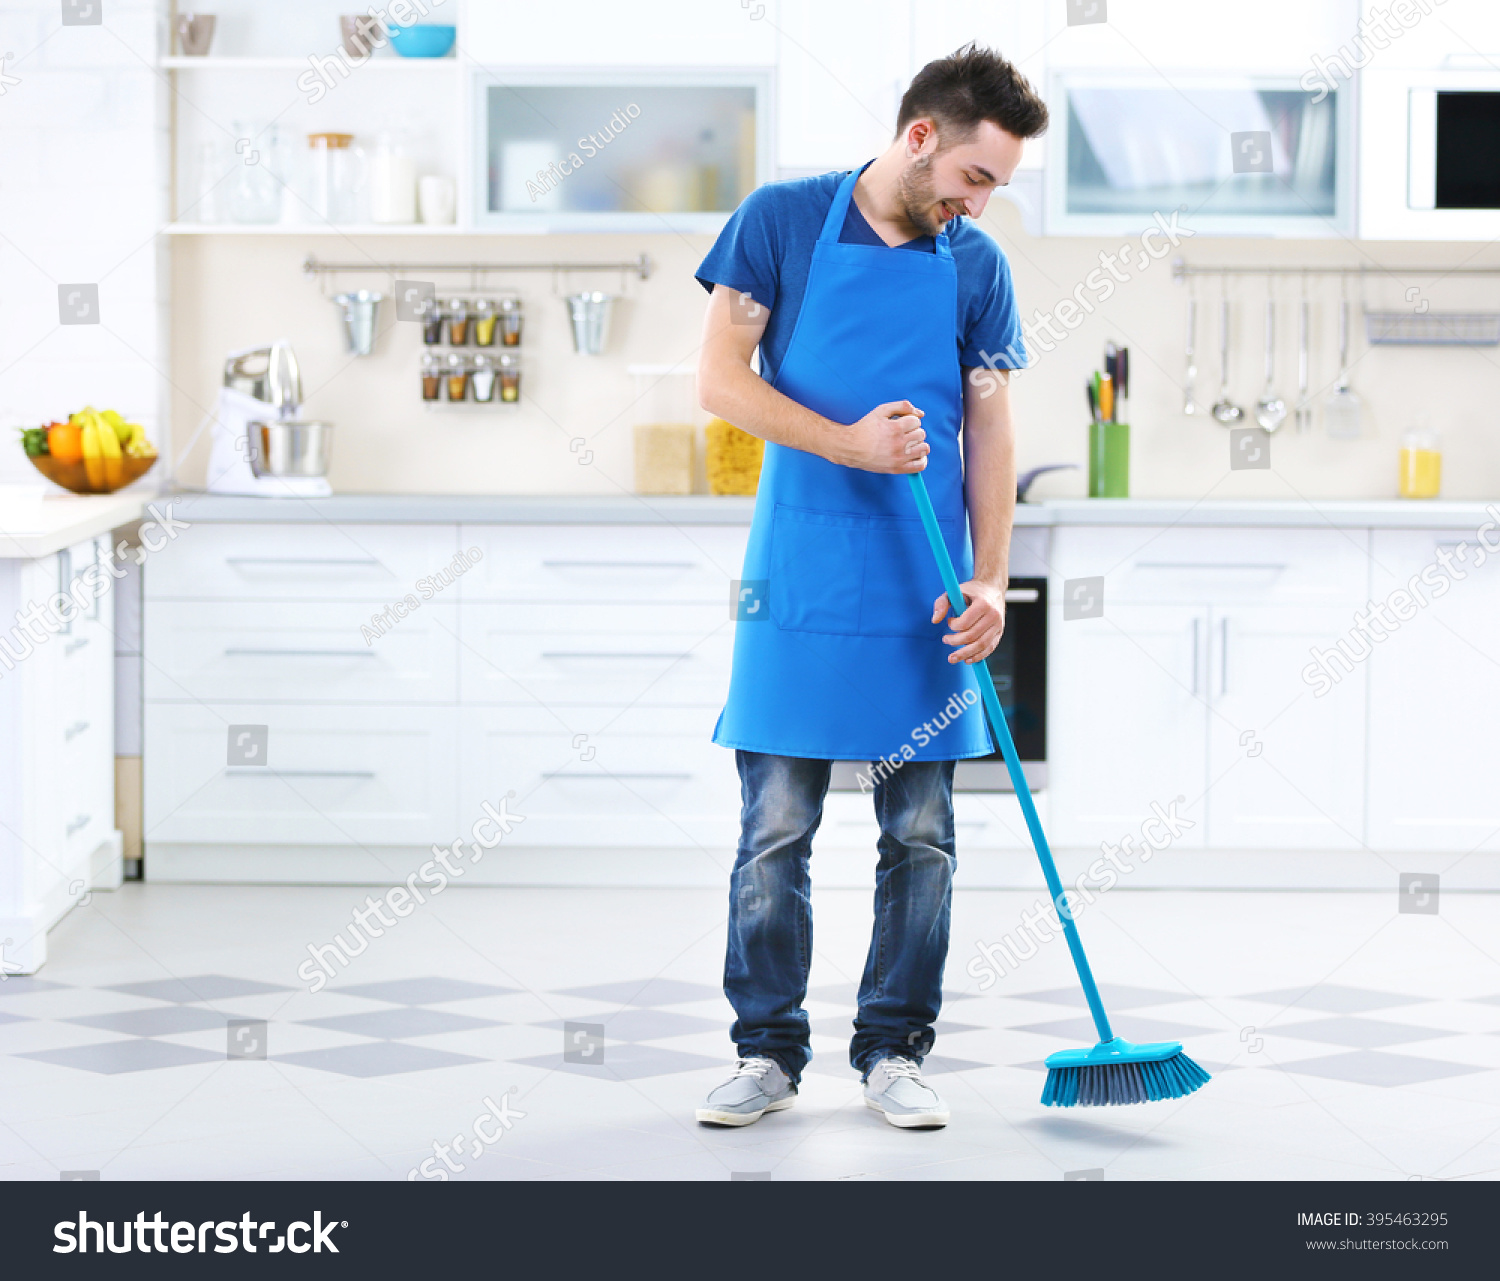 Kitchen Floor Vacuum Man Sweeping Floor Kitchen Stock Photo 395463295 Shutterstock